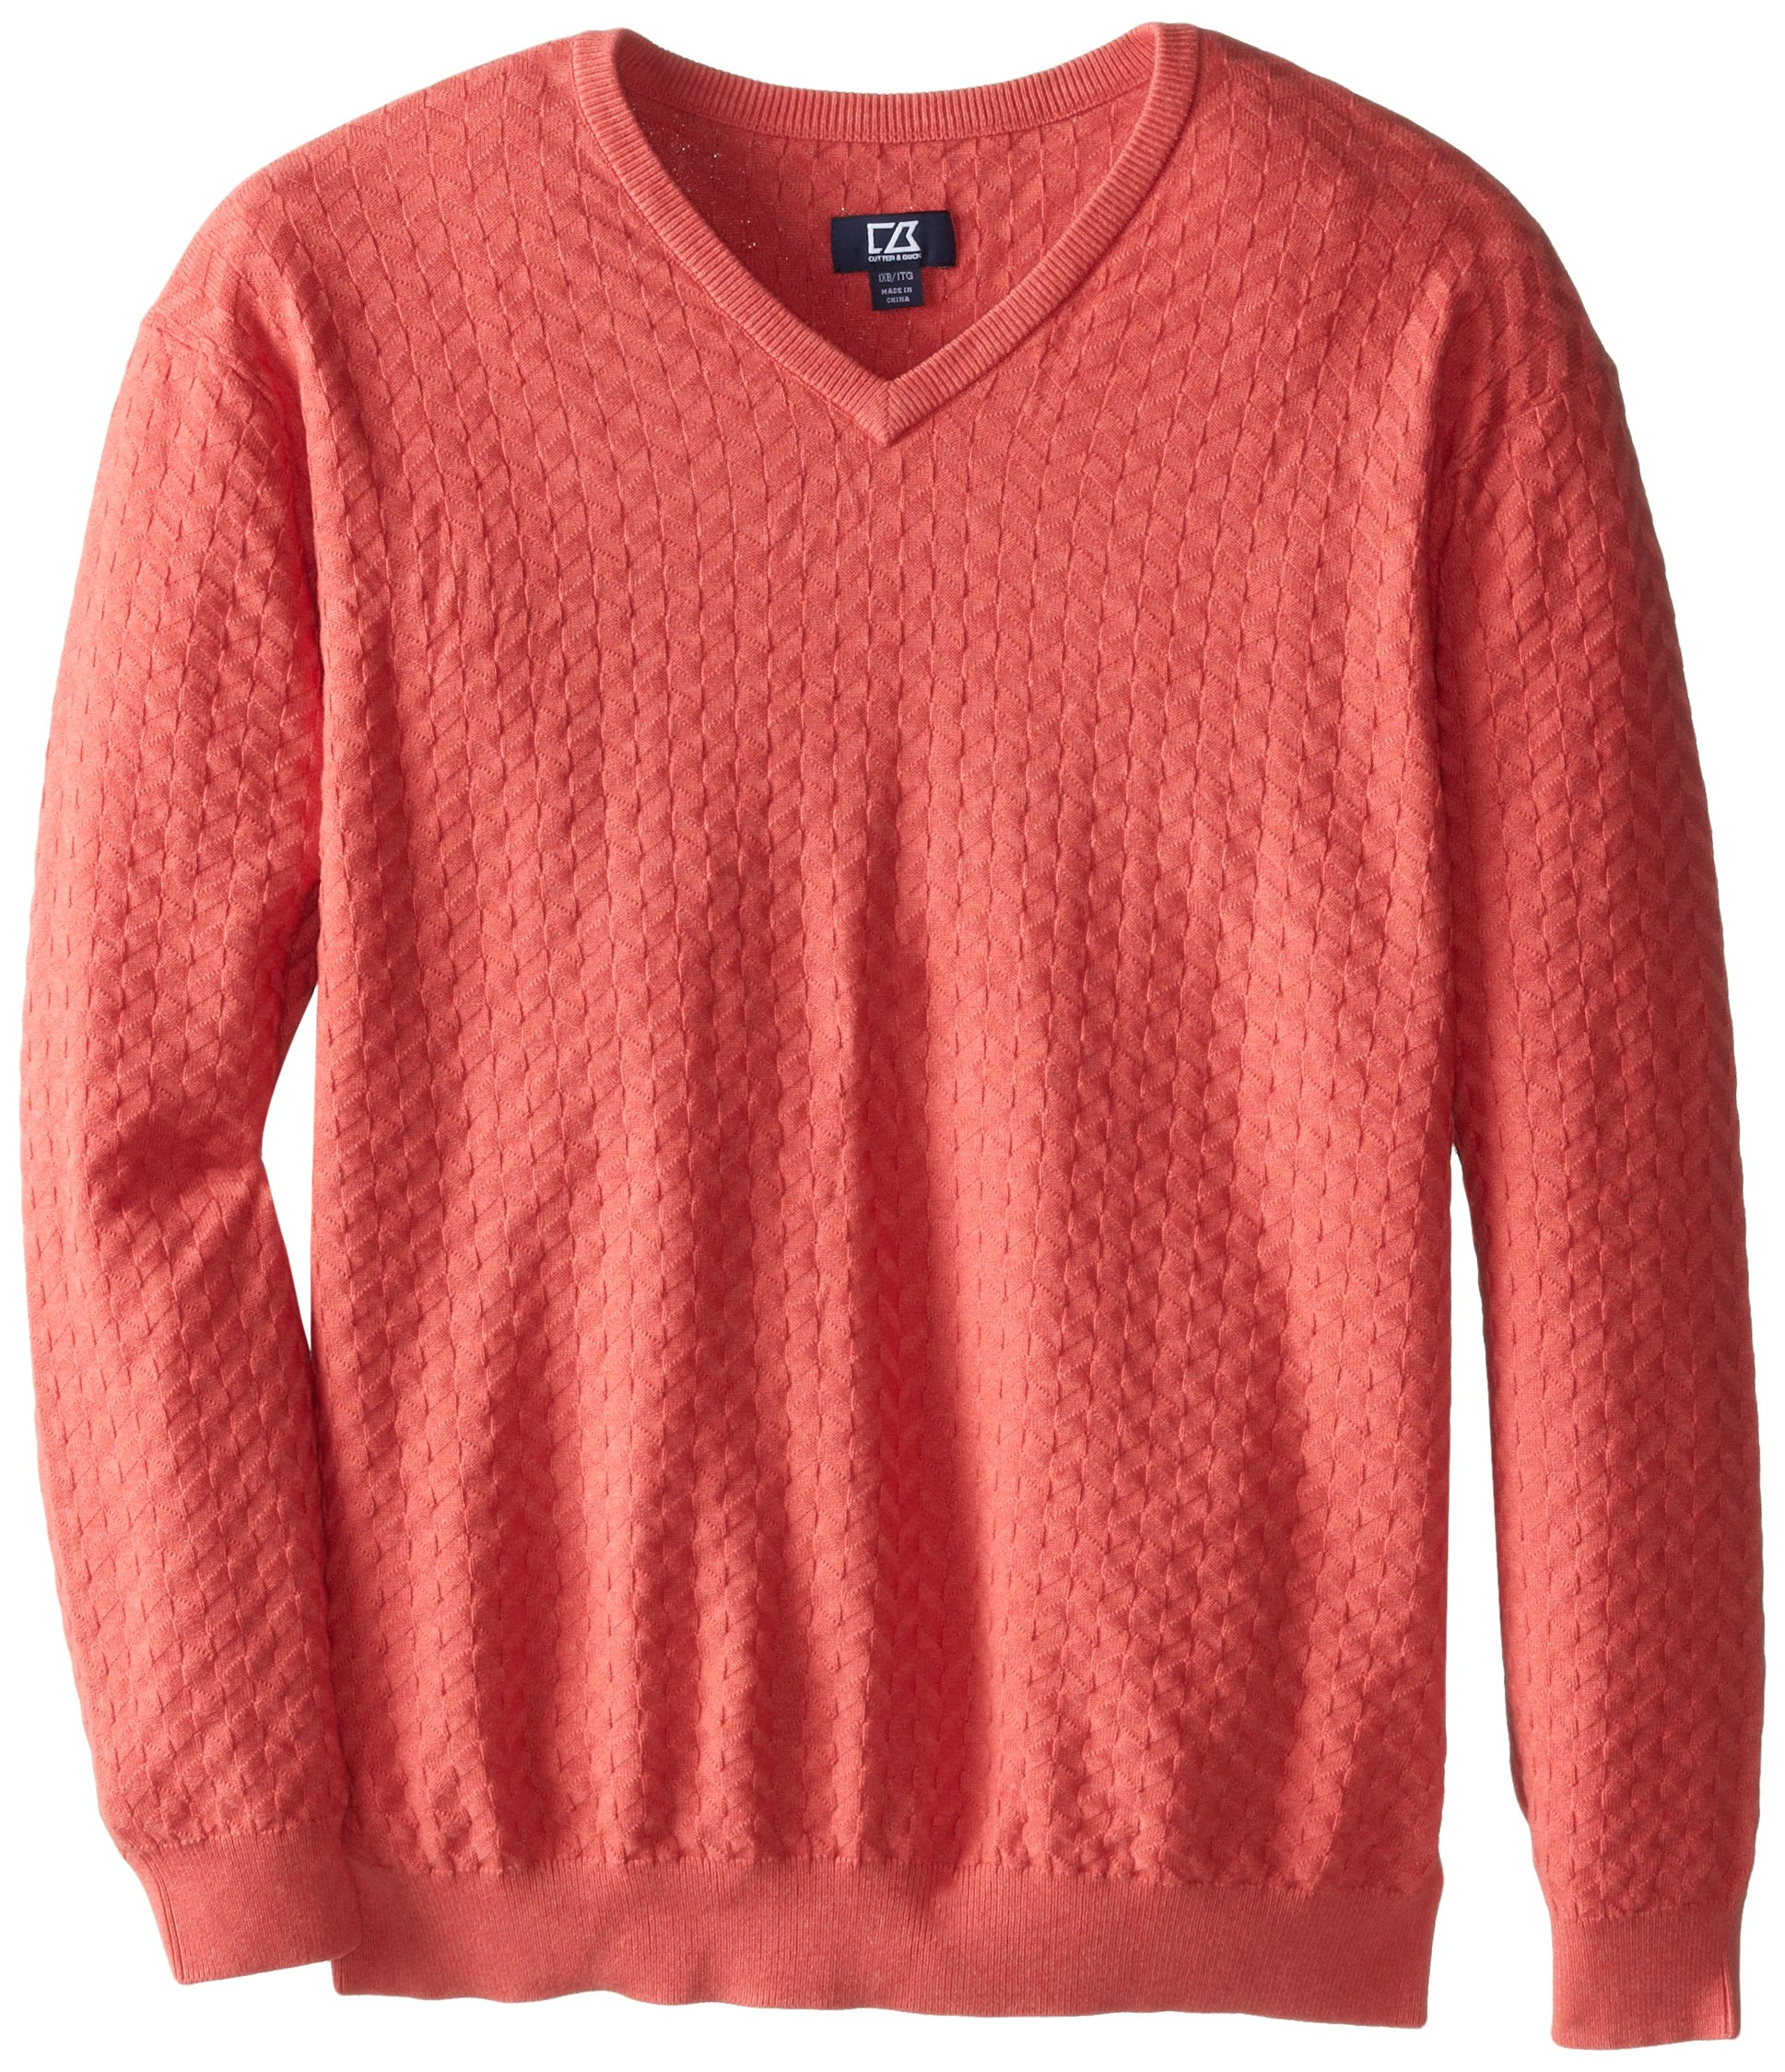 Cutter & Buck Men's Big-Tall Mitchell V-Neck Sweater, Fairmount, 3X/Big